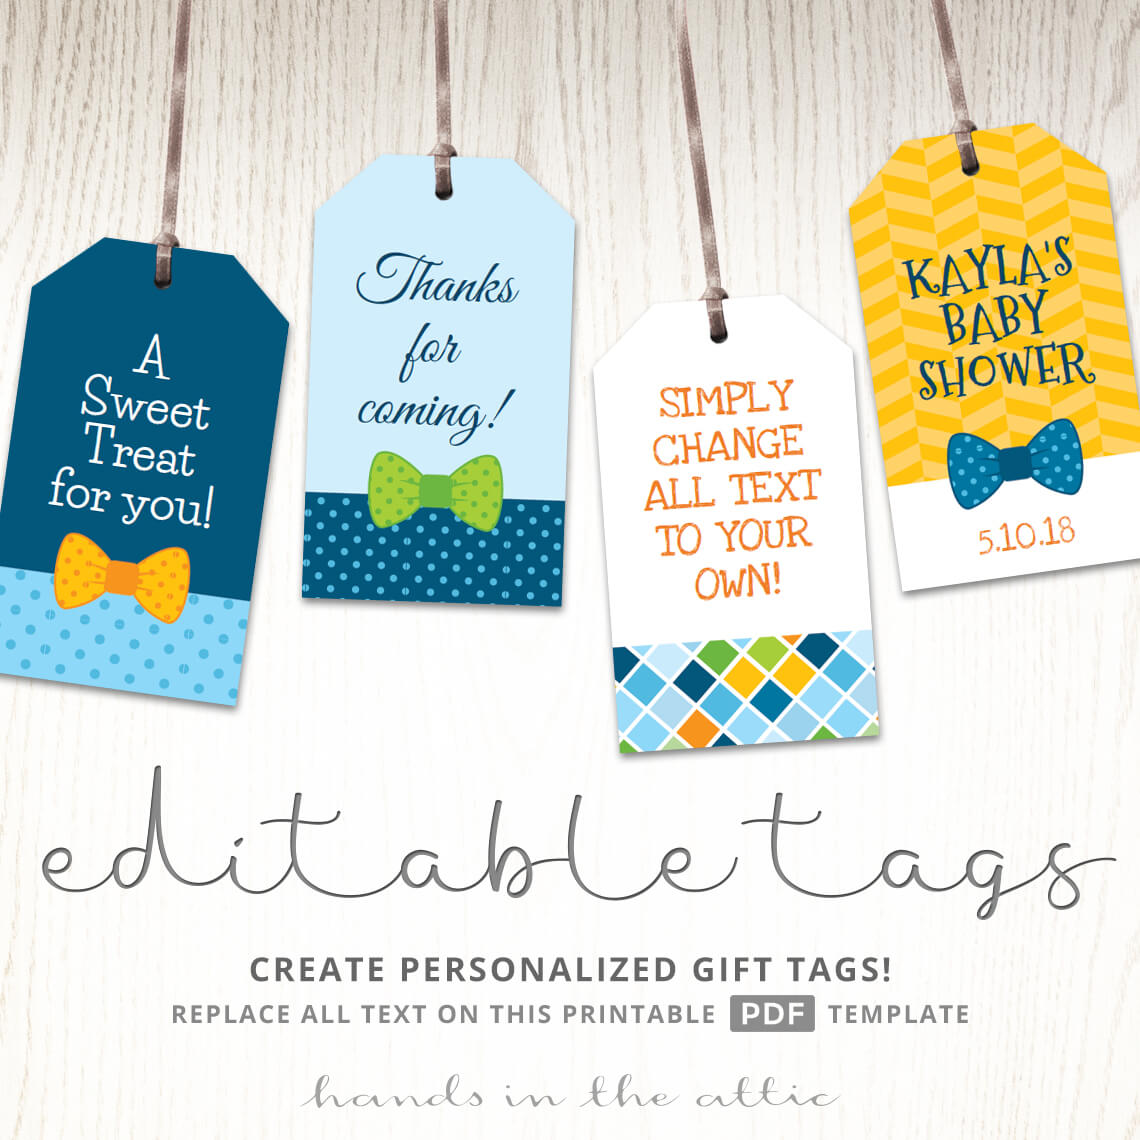 Gift Tags for a Bow Tie Baby Shower Theme